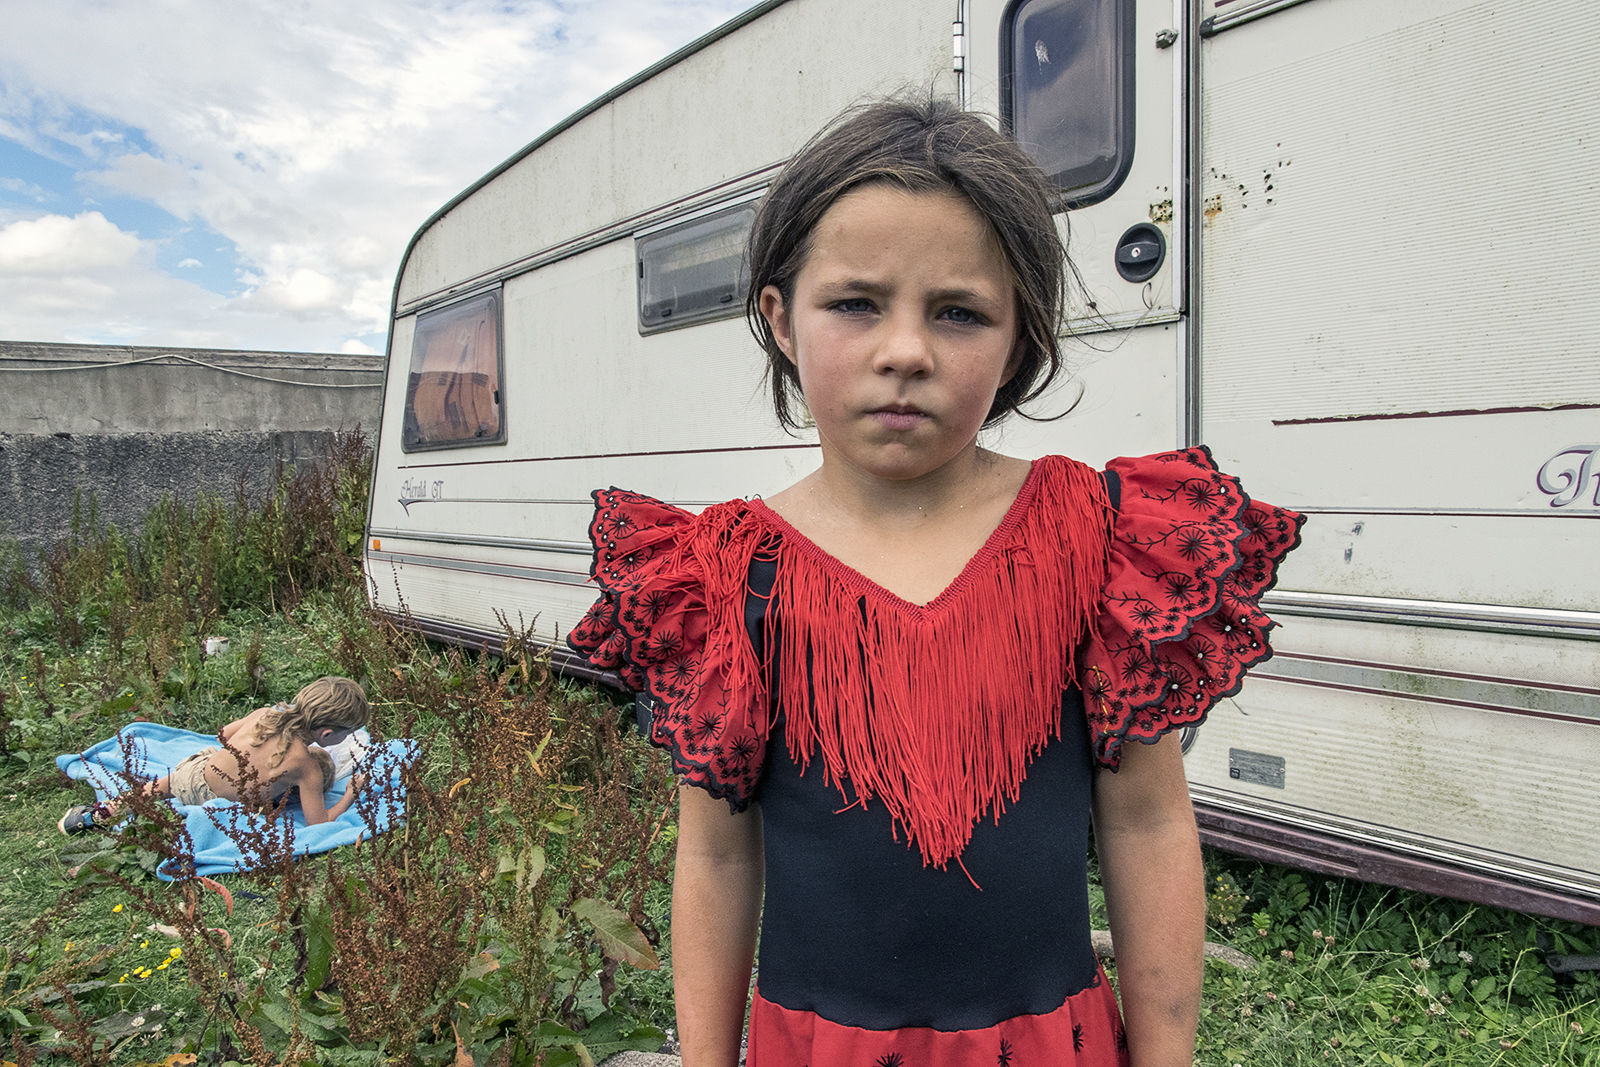 Nikita in Red Gypsy Dress, roadside campsite, Tipperary, Ireland 2018